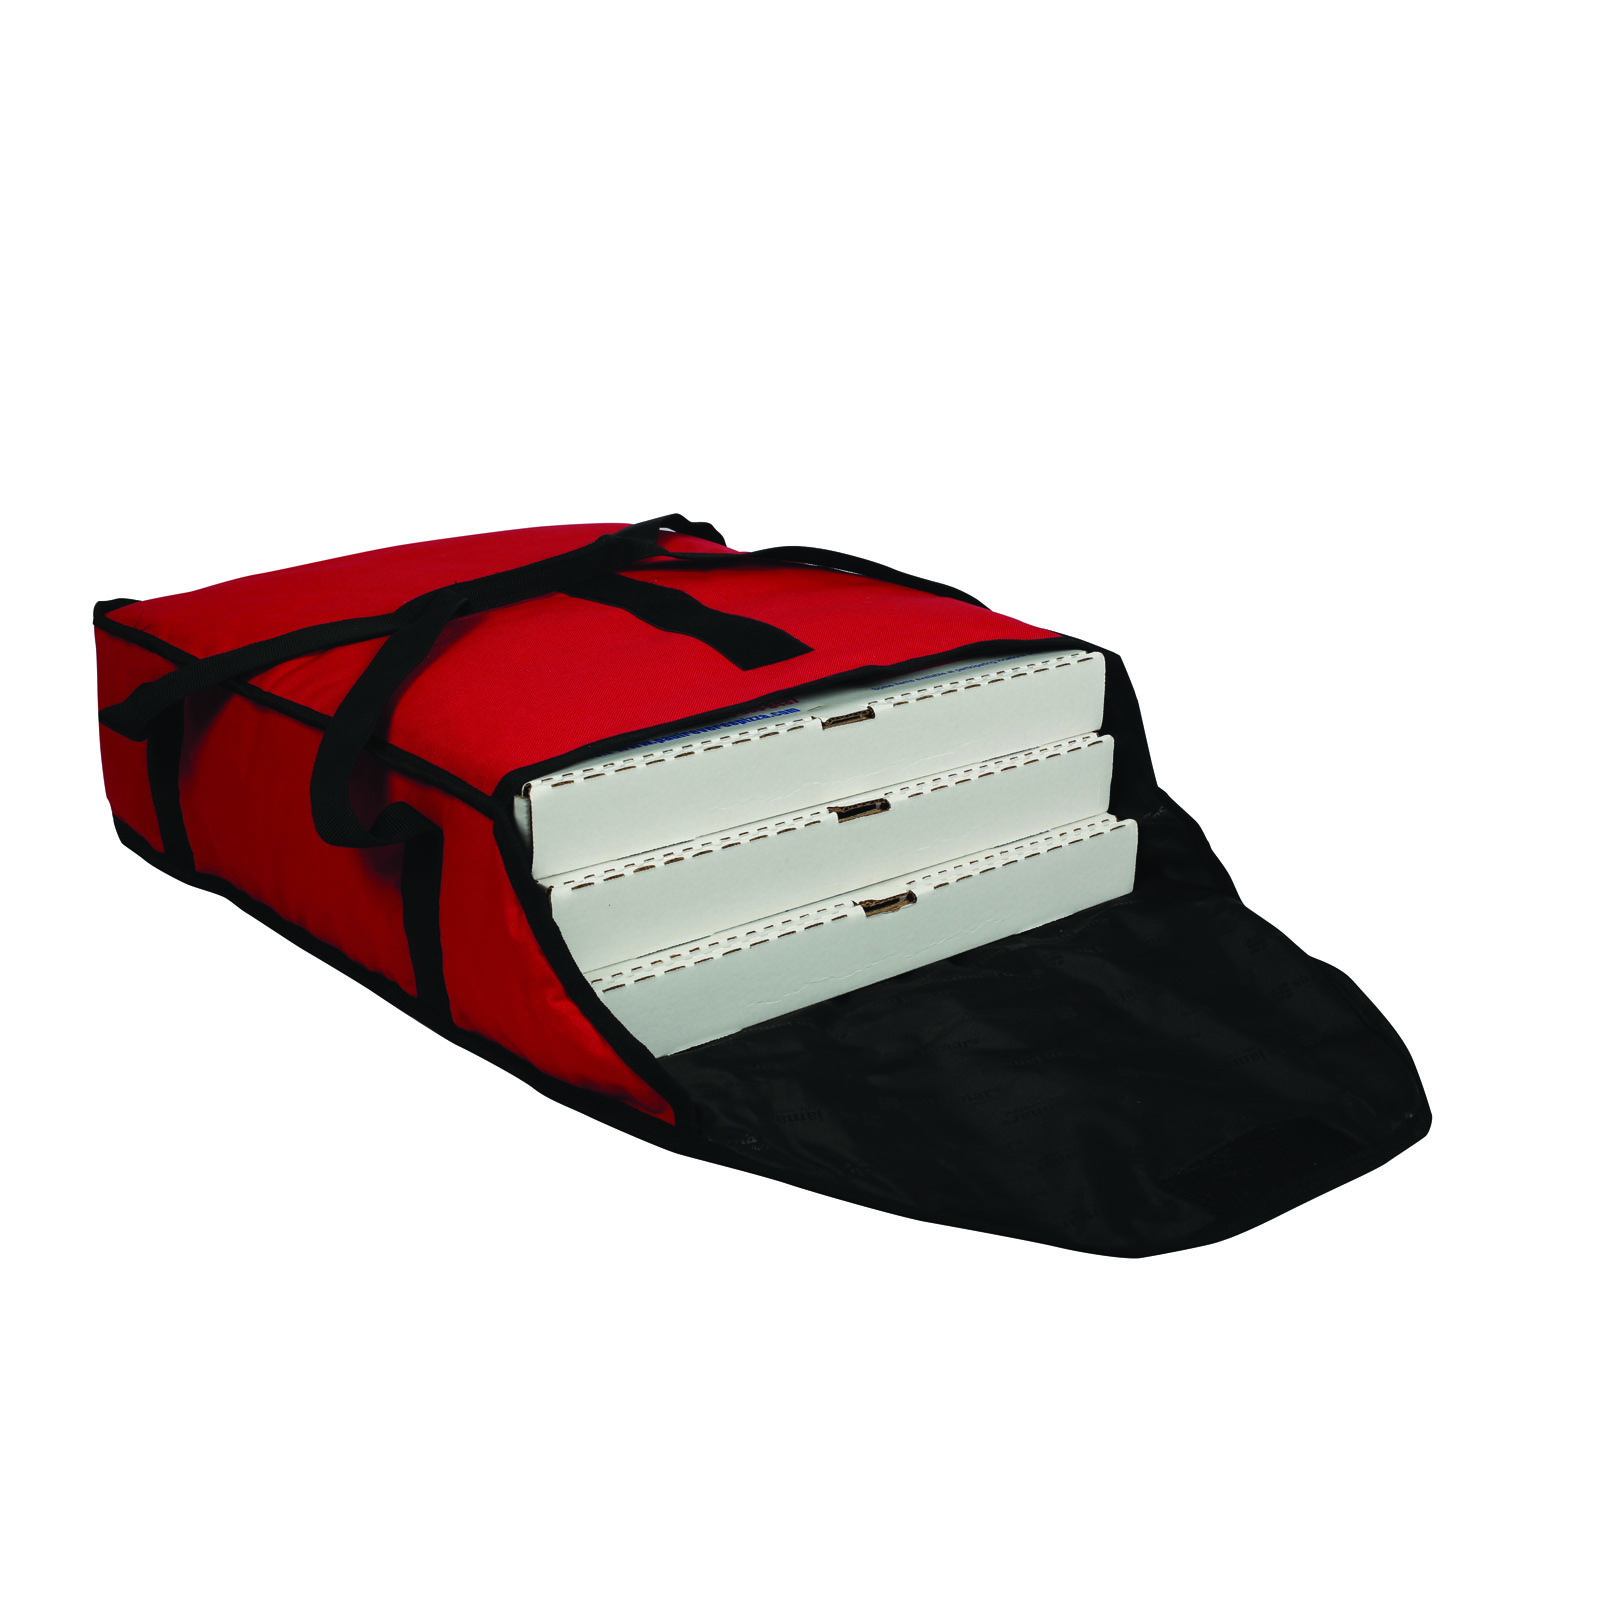 San Jamar PB20-6 pizza delivery bag